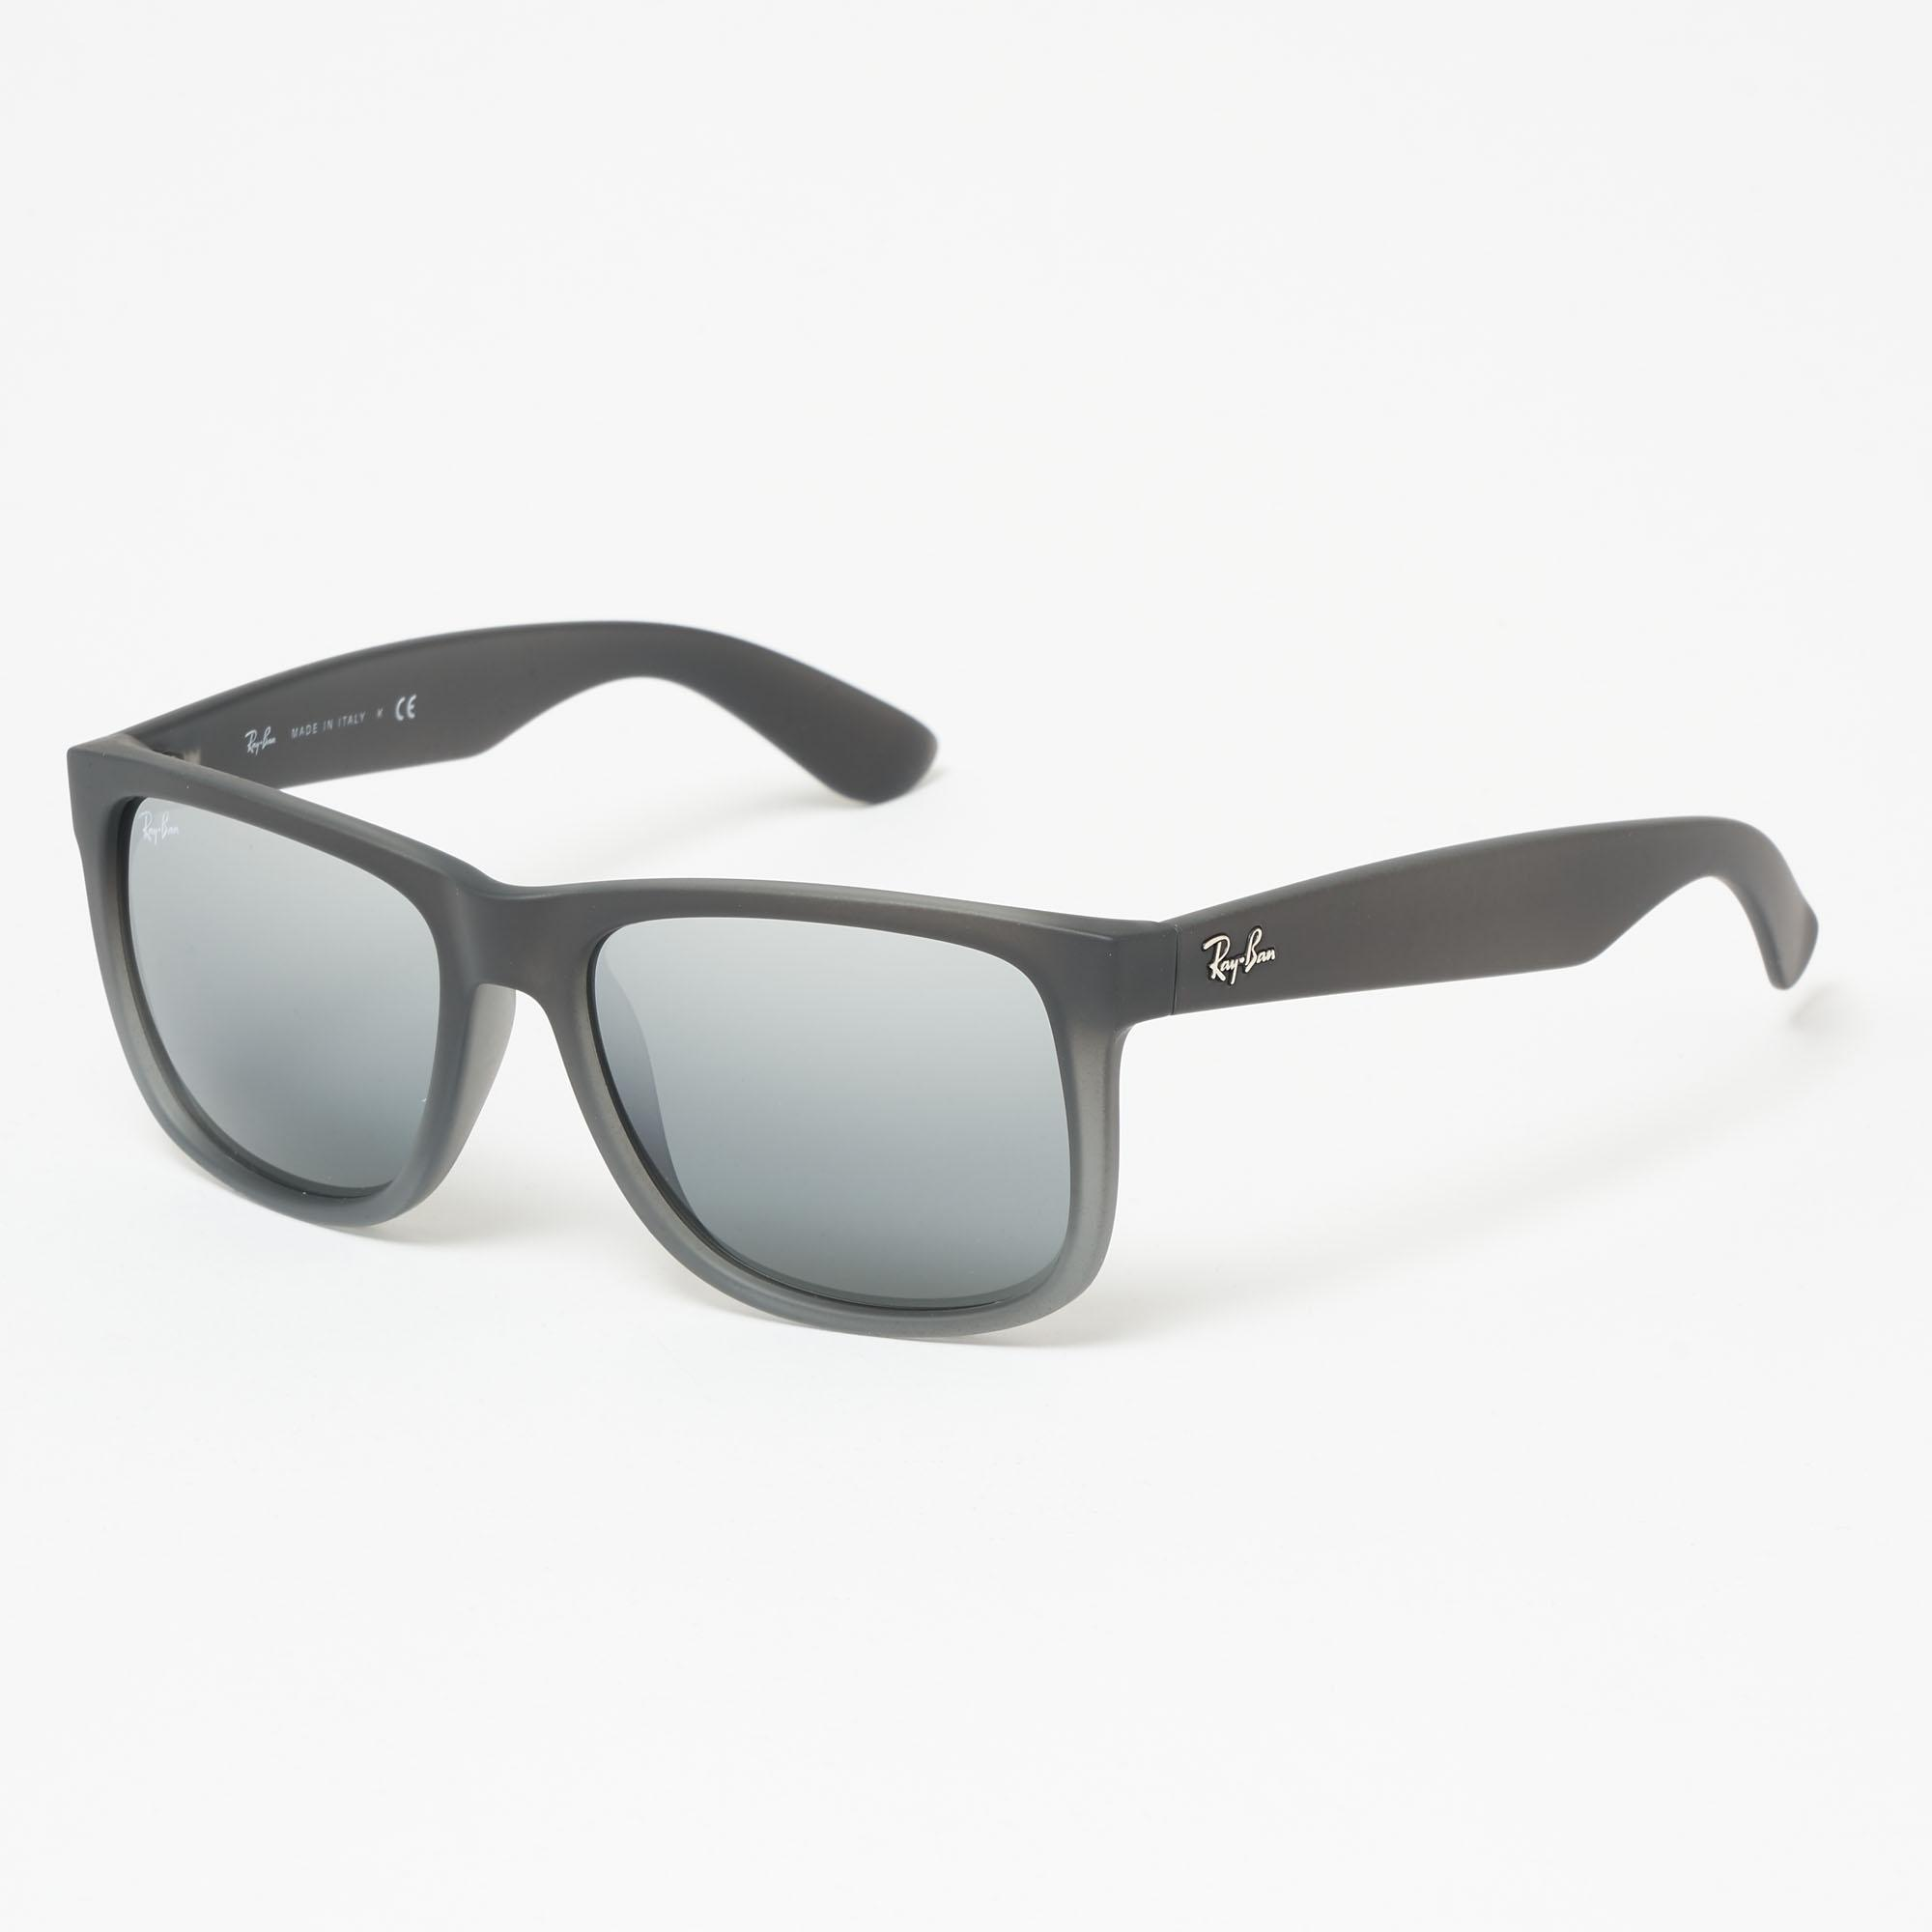 9d76632c64 Lyst - Ray-Ban Justin Smoke Grey Sunglasses 0Rb4165-852 88 for Men